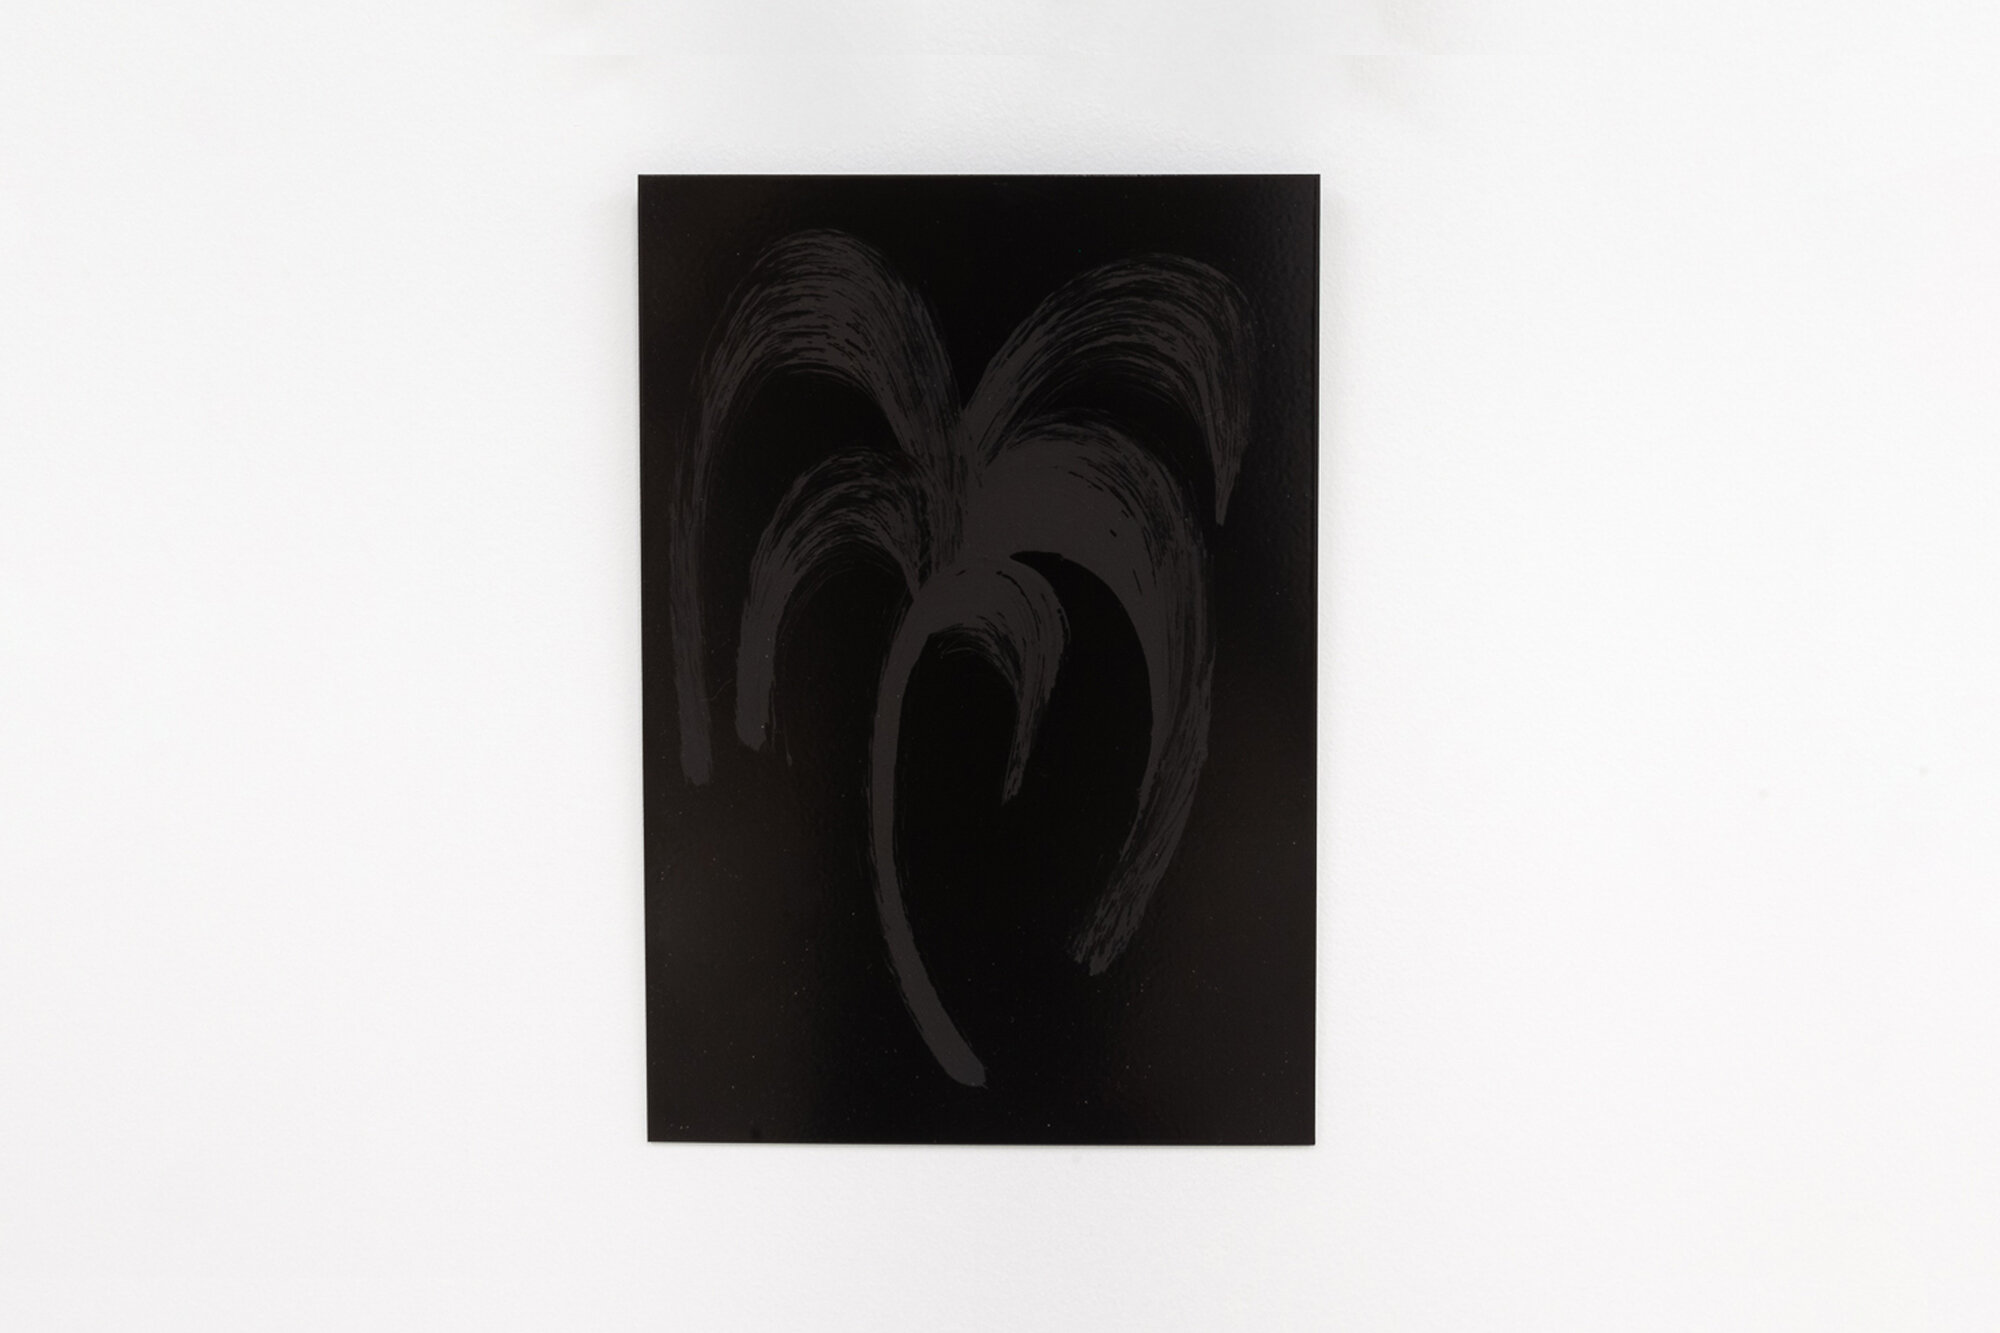 Image: Sarah Ortmeyer,  PALMA , 2019. Gesso on metal.  INFERNO CHICAGO , curated by Stephanie Cristello, Chicago Manual Style (Chicago, IL). Copyright Sarah Ortmeyer. Courtesy of Dvir, Tel Aviv / Brussels. Photographer: Robert Chase Heishman.